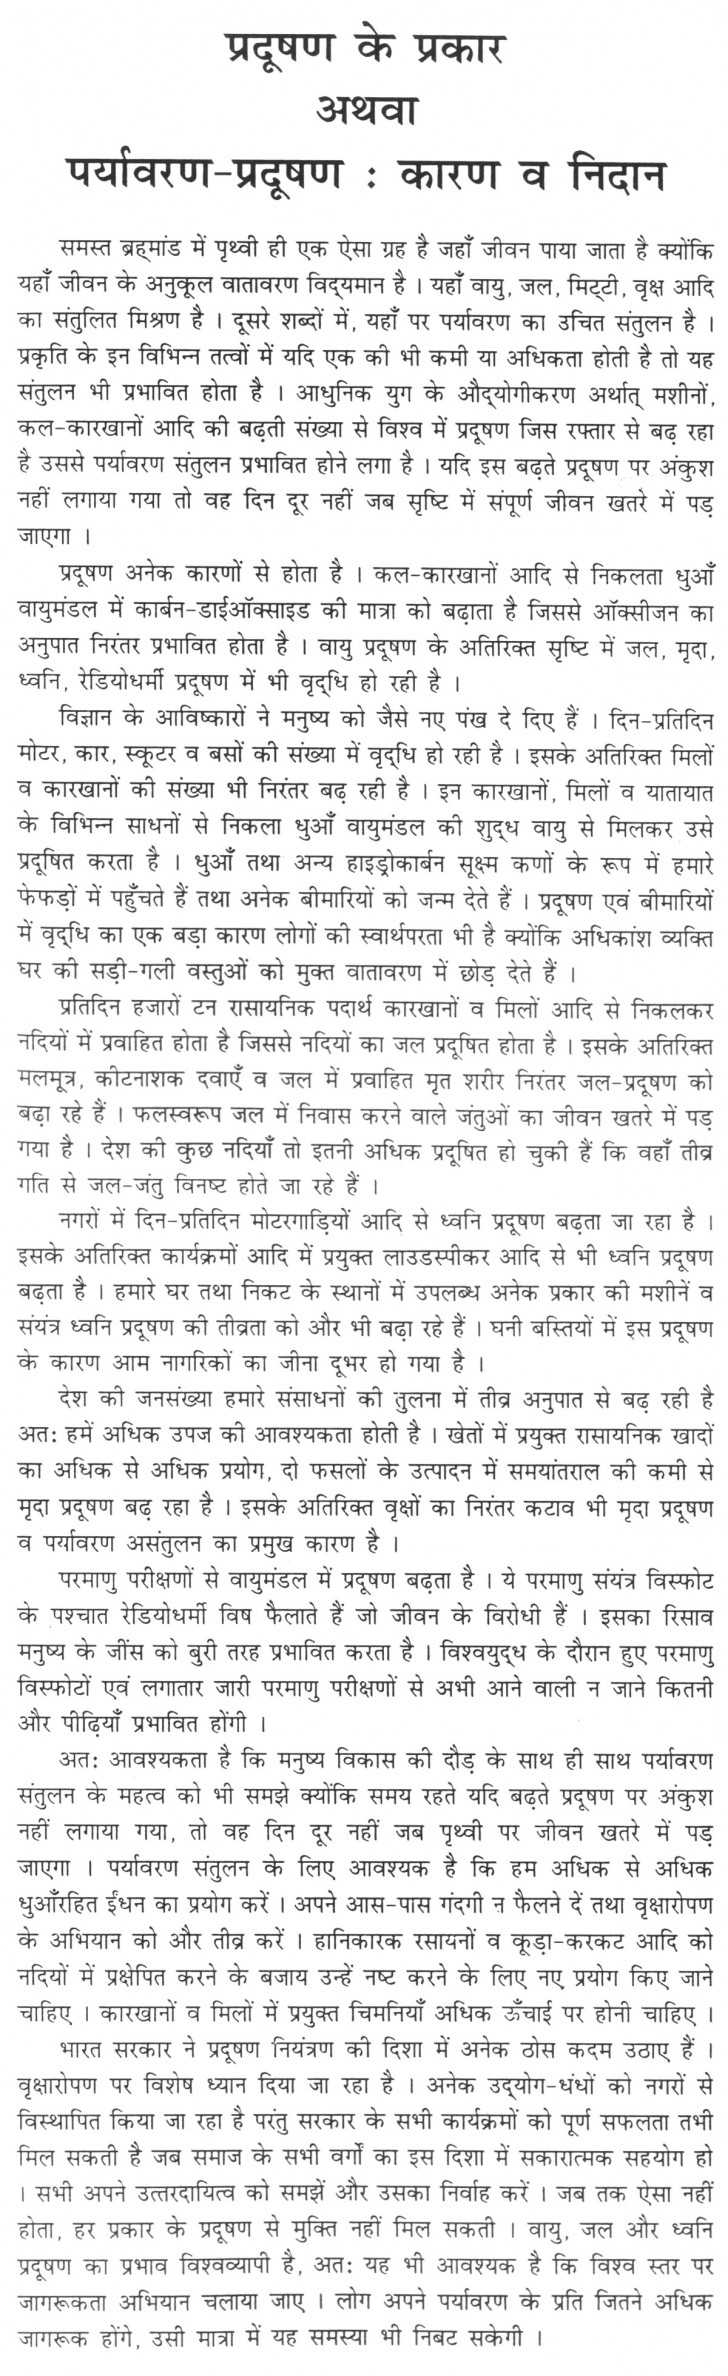 014 Good Habits Essay In Hindi Exceptional Food Wikipedia 728